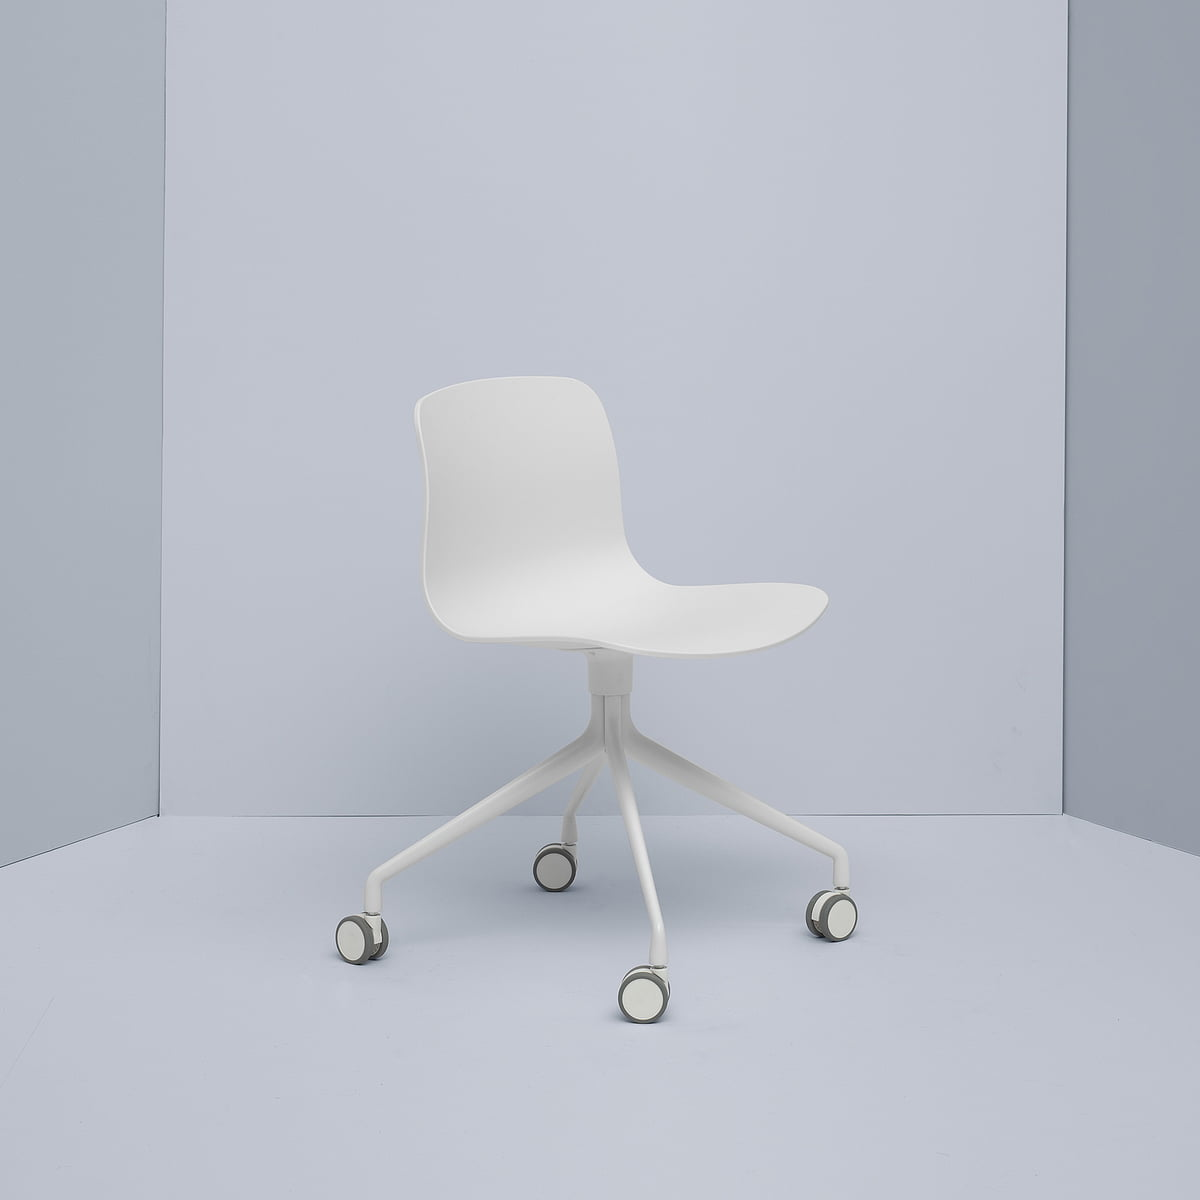 scandinavian-white-office-chair-four-wheels-white-base-and-molded-seat-minimalistic-work-from-home-furniture-for-small-spaces-1